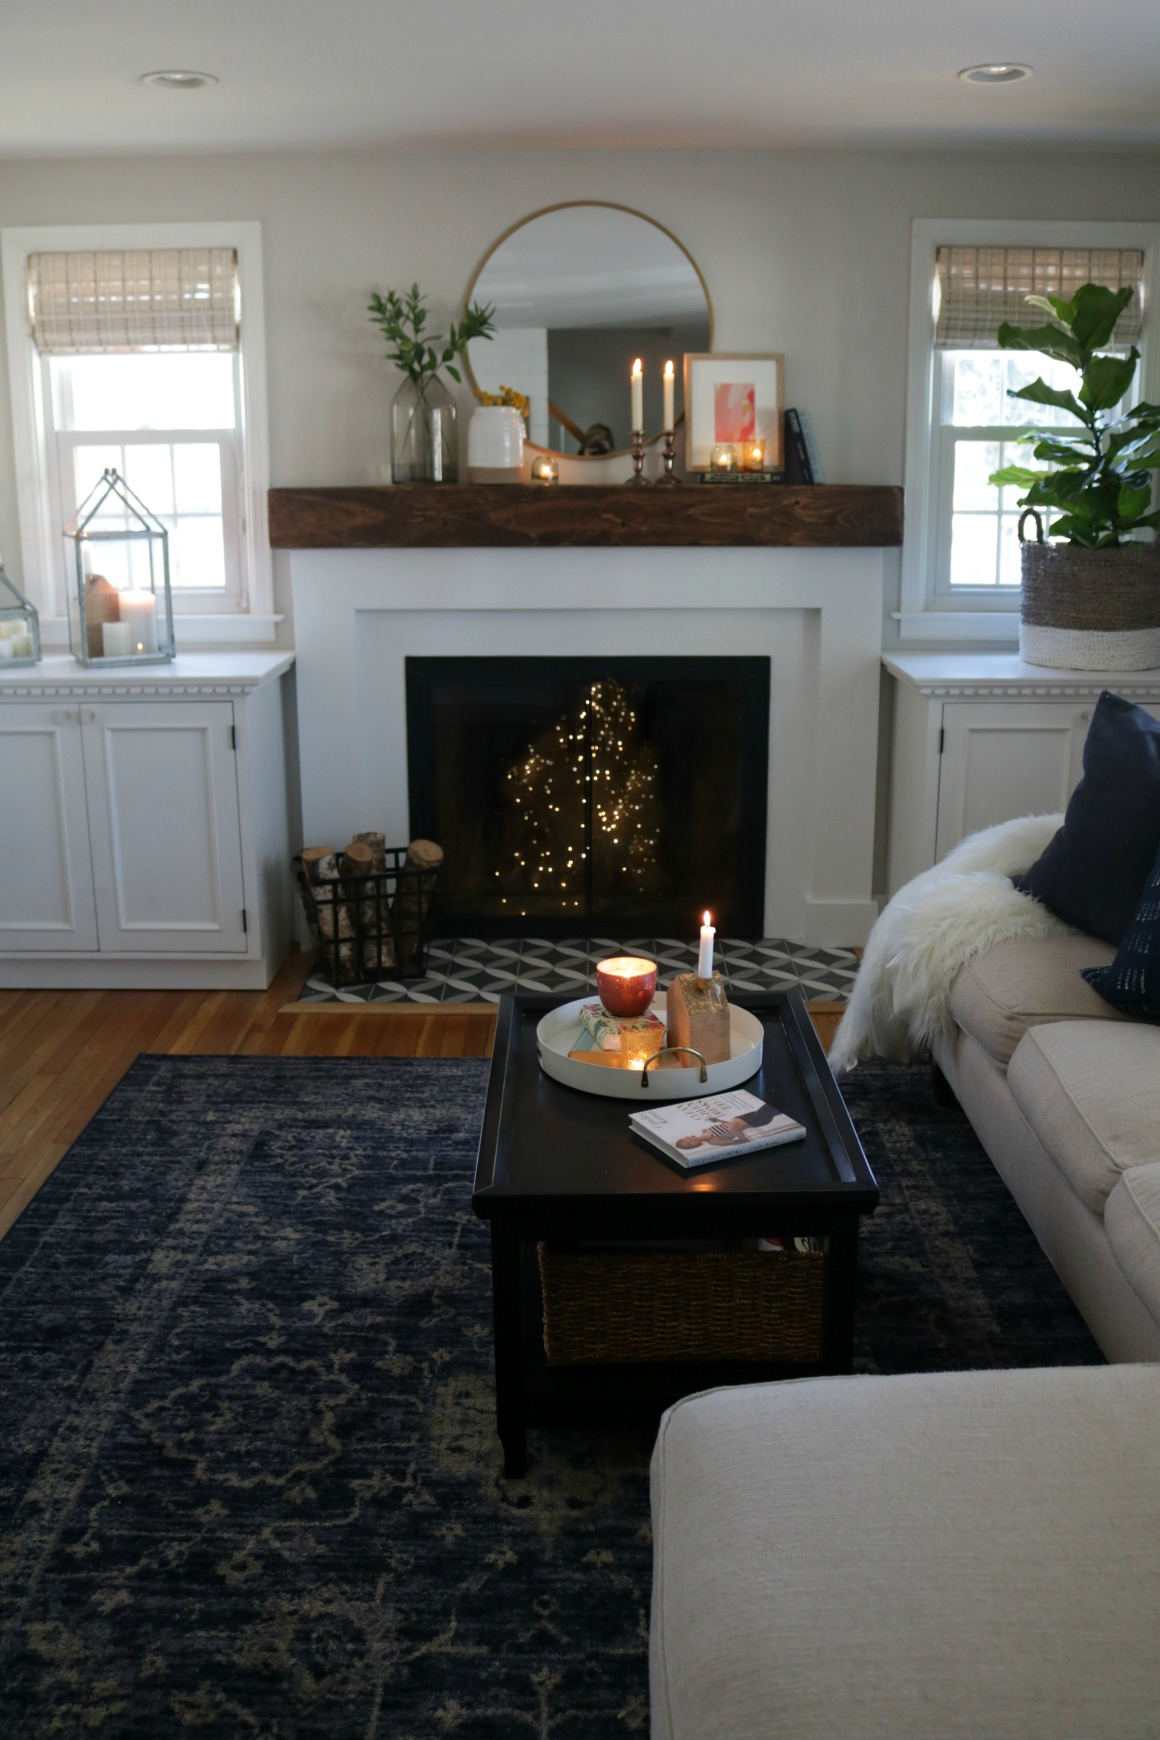 Fireplace Makeover And Styled With Decor From Target Nesting With Grace